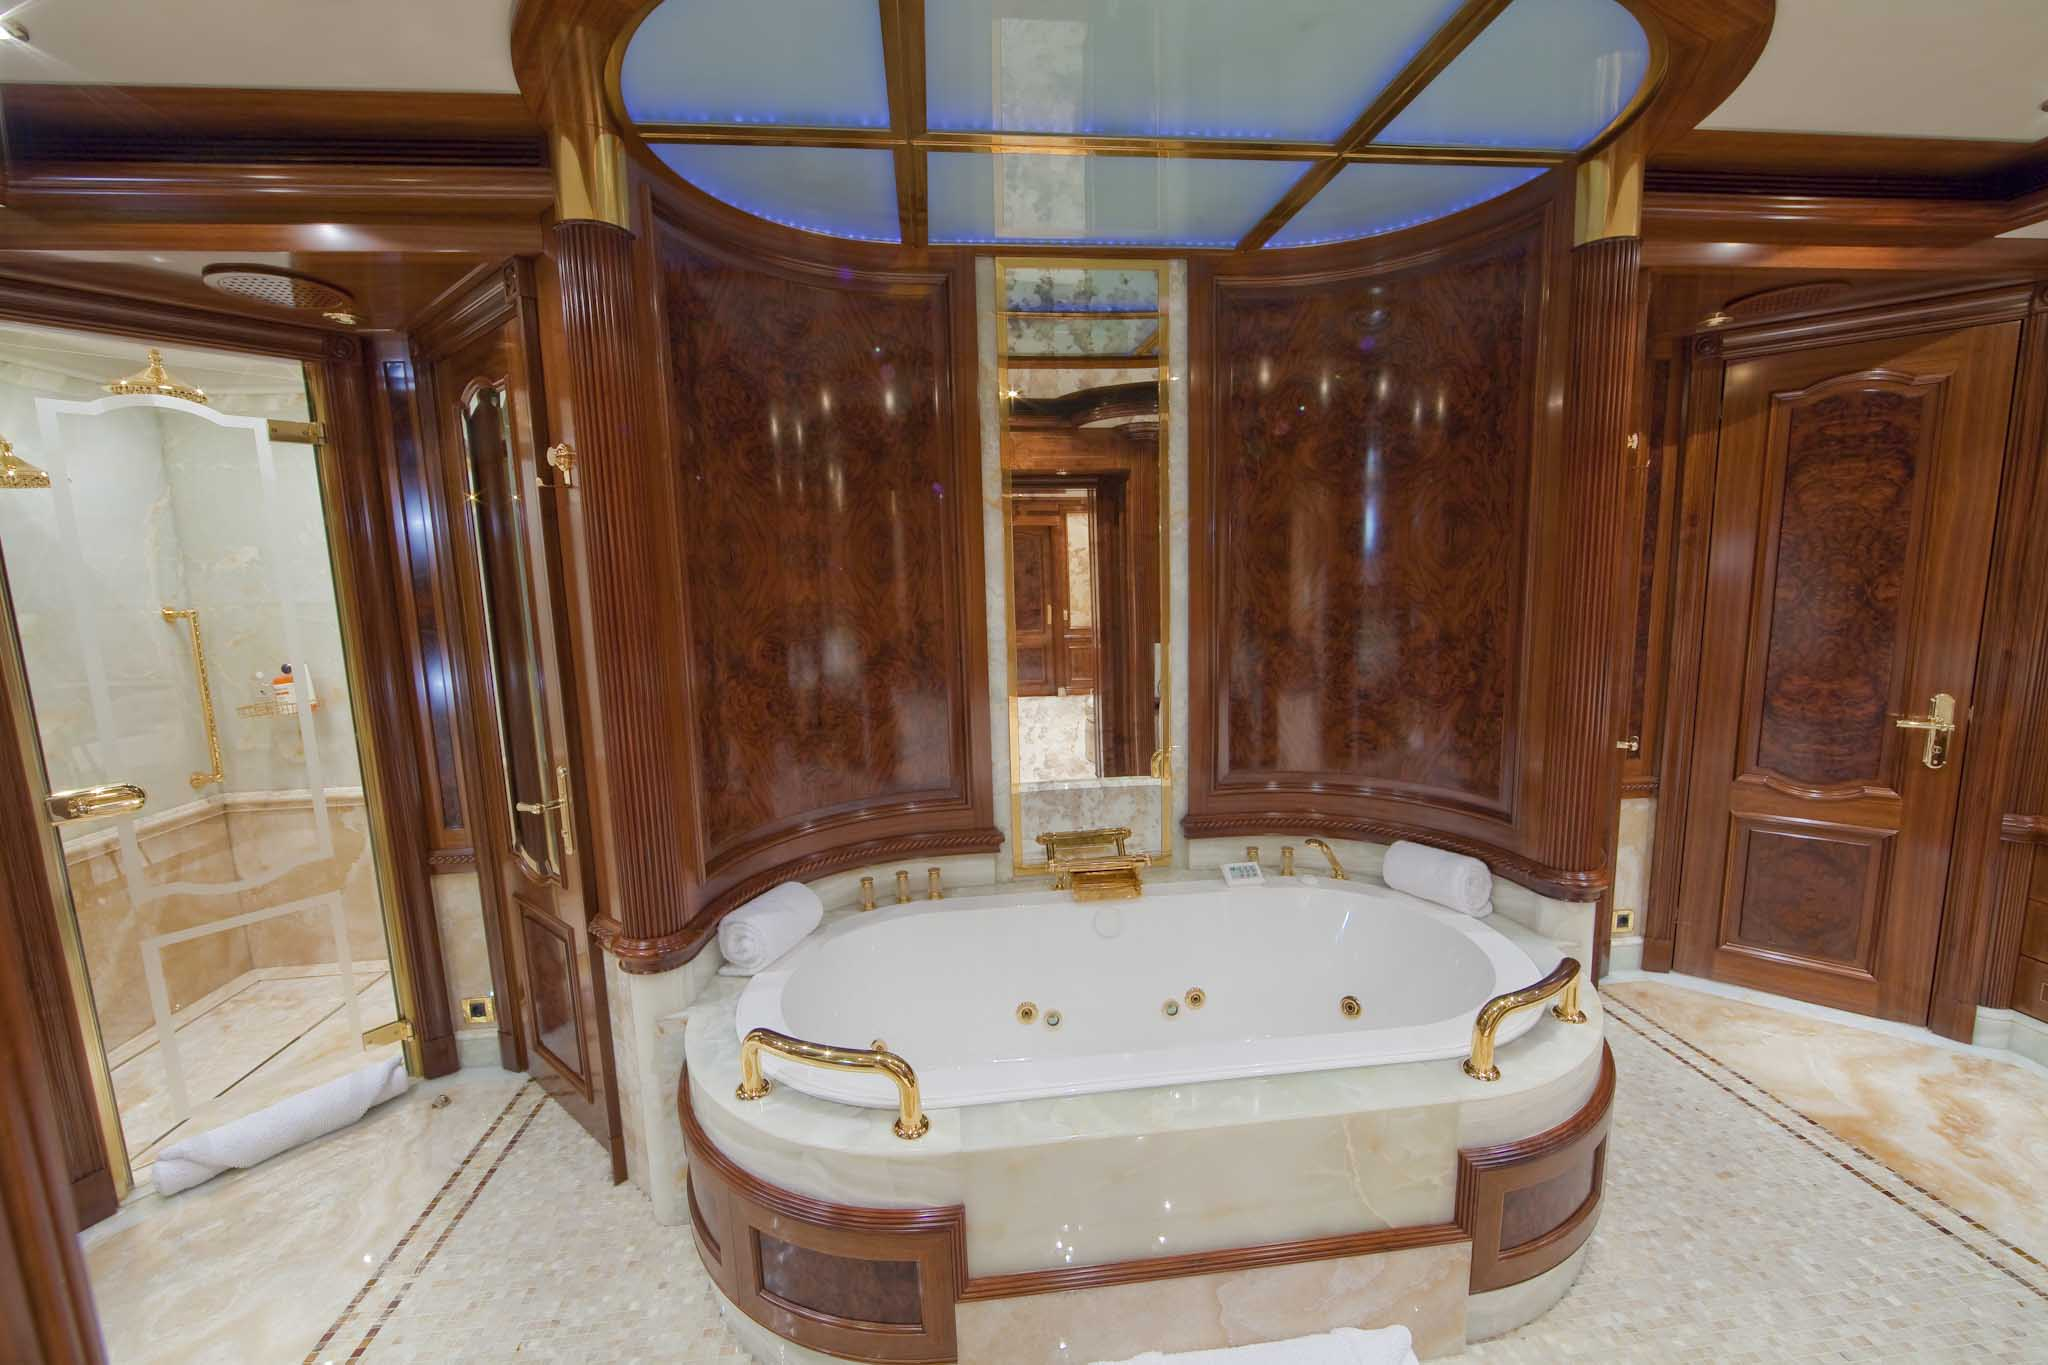 Bathroom image gallery luxury yacht browser by charterworld superyacht charter Small yacht bathroom design